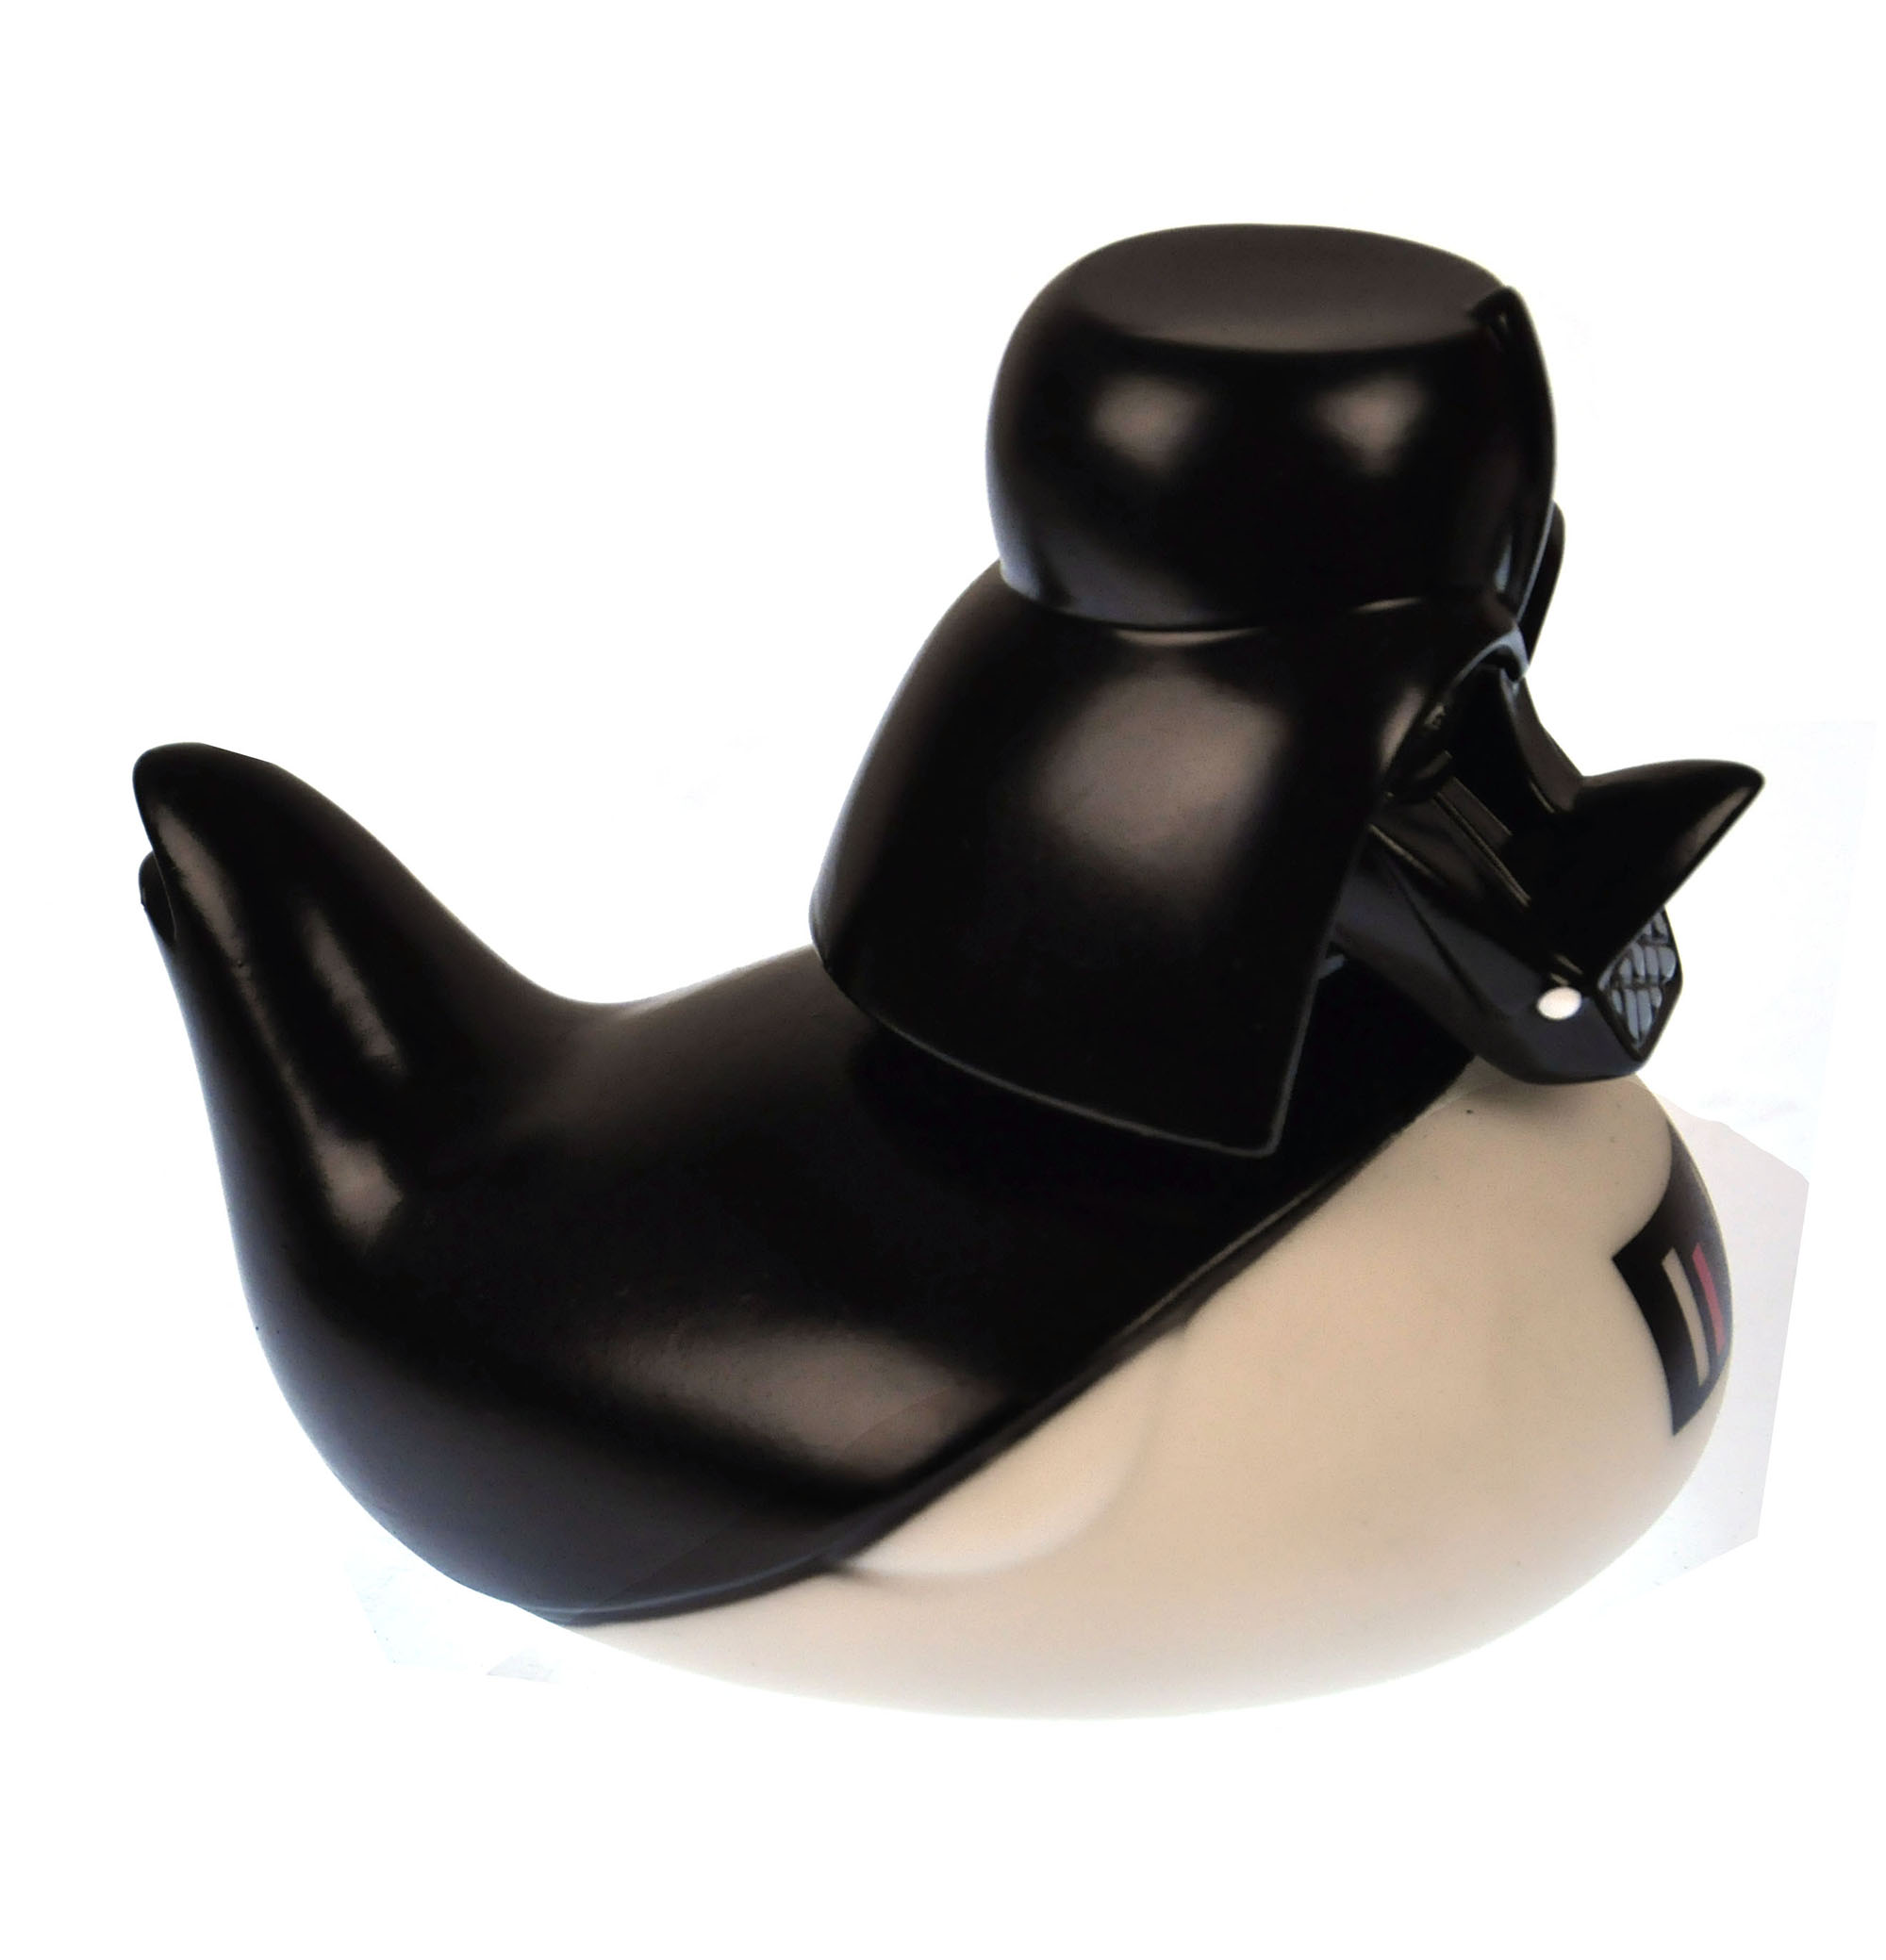 Darth vader rubber duck - photo#38